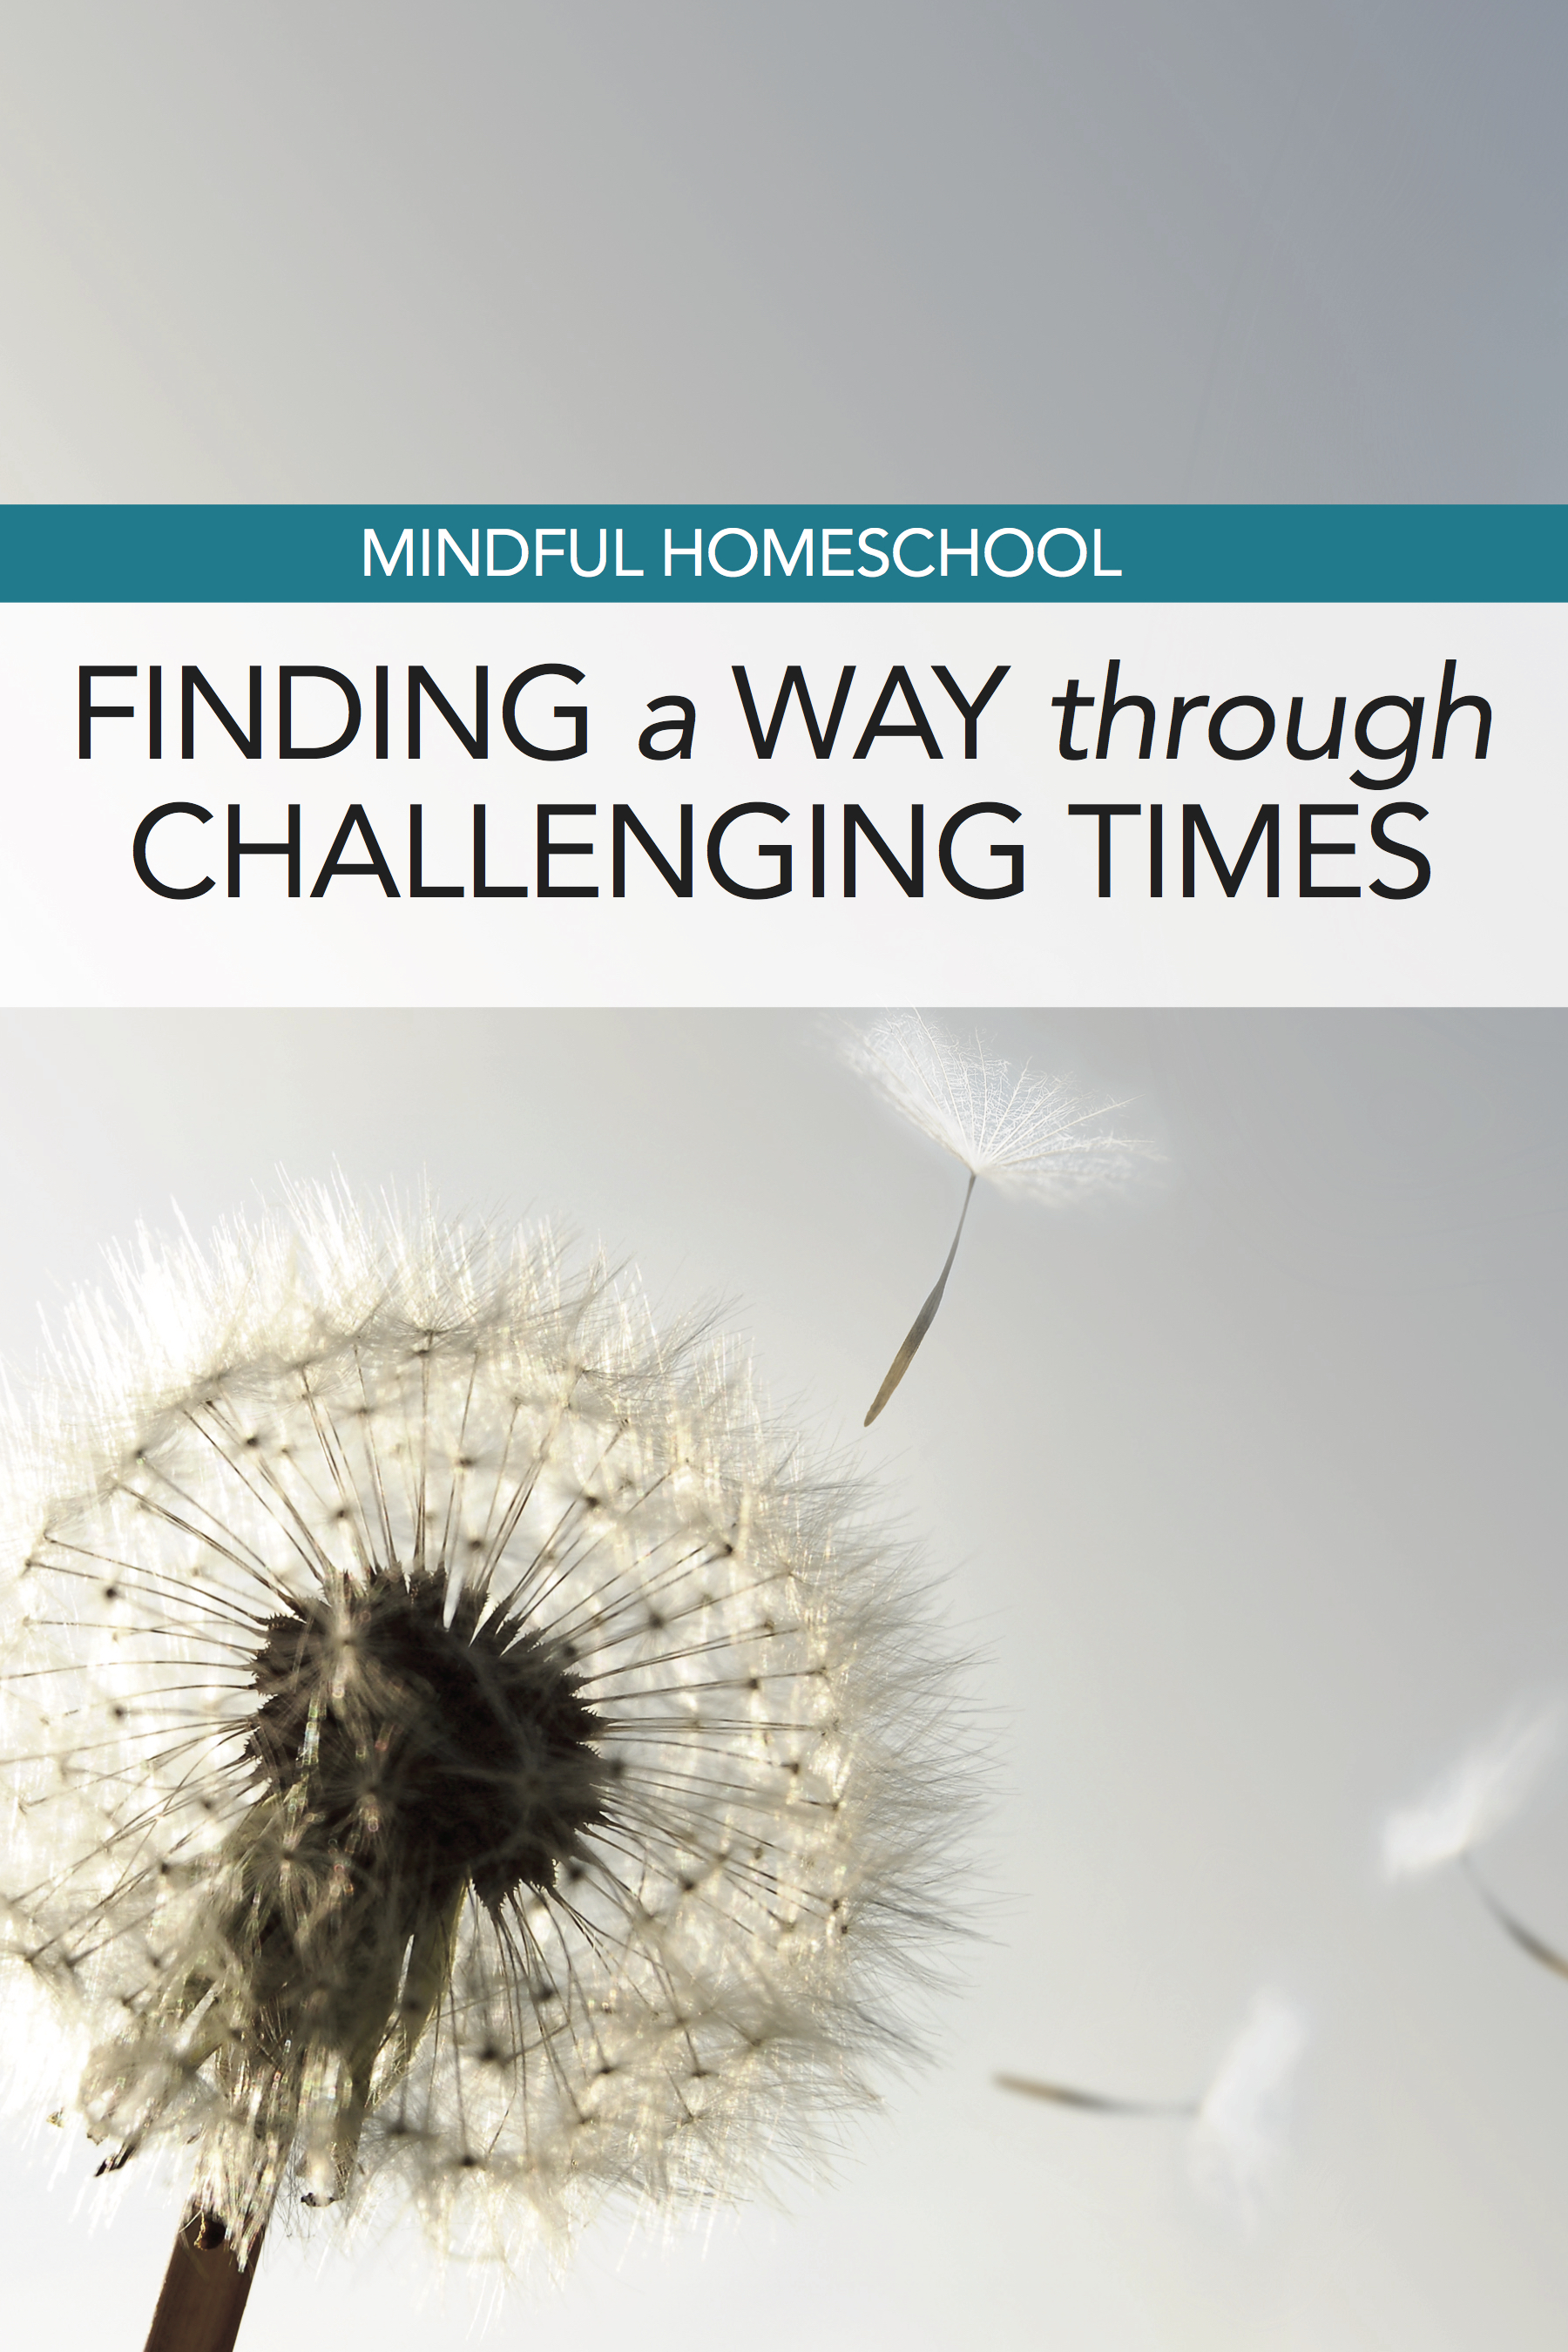 Mindful Homeschool: Finding a Way Through Challenging Times